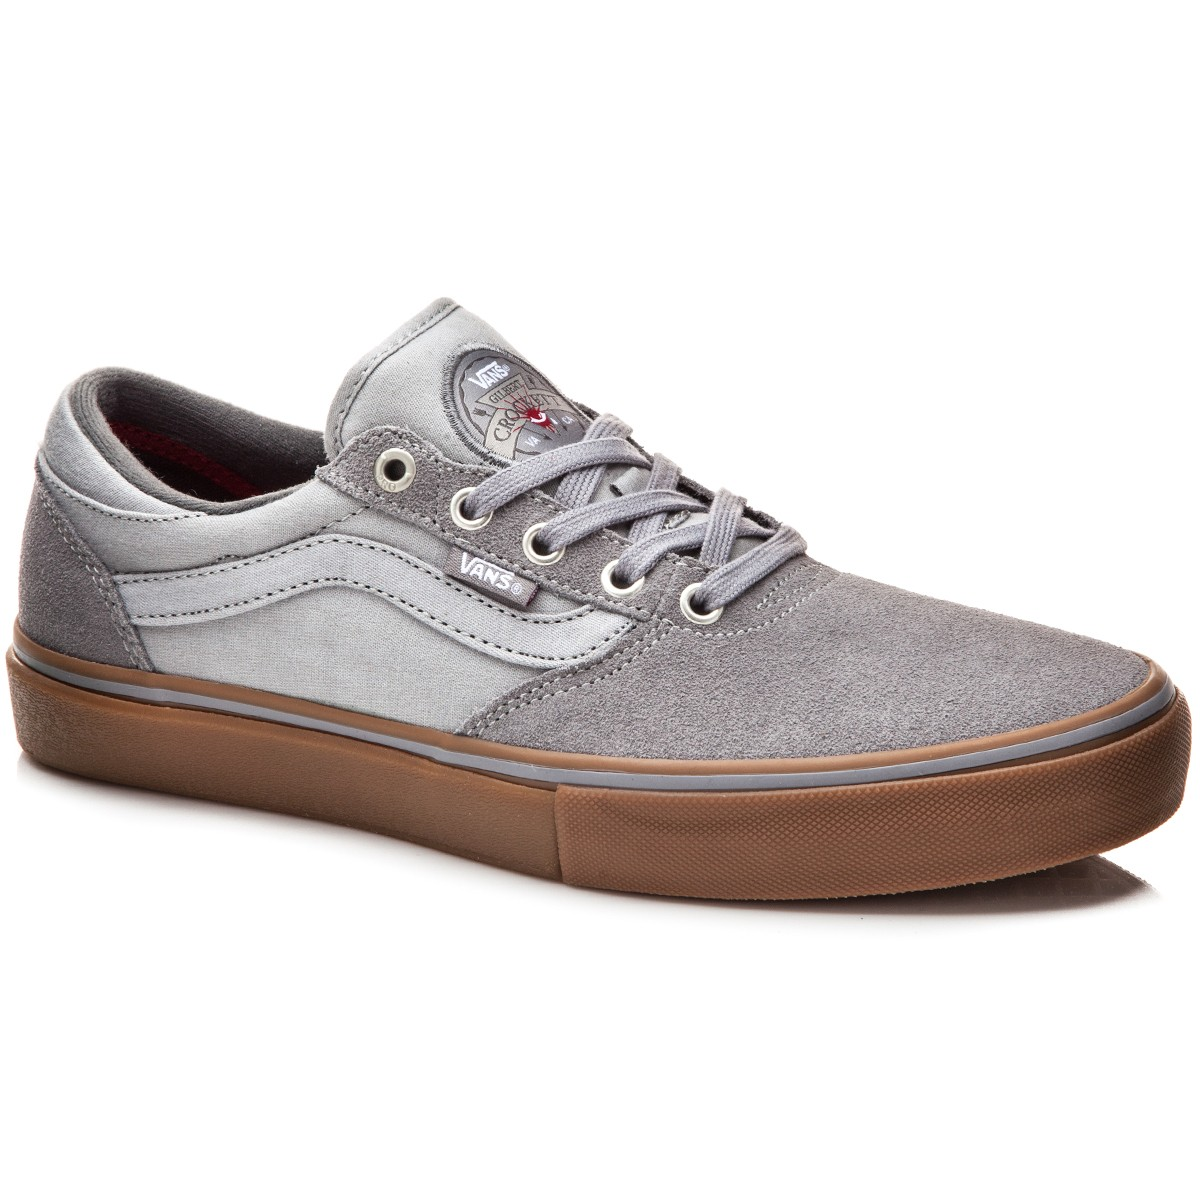 Vans Gilbert Crockett Pro Shoes - Chambray Grey/Gum - 10.0